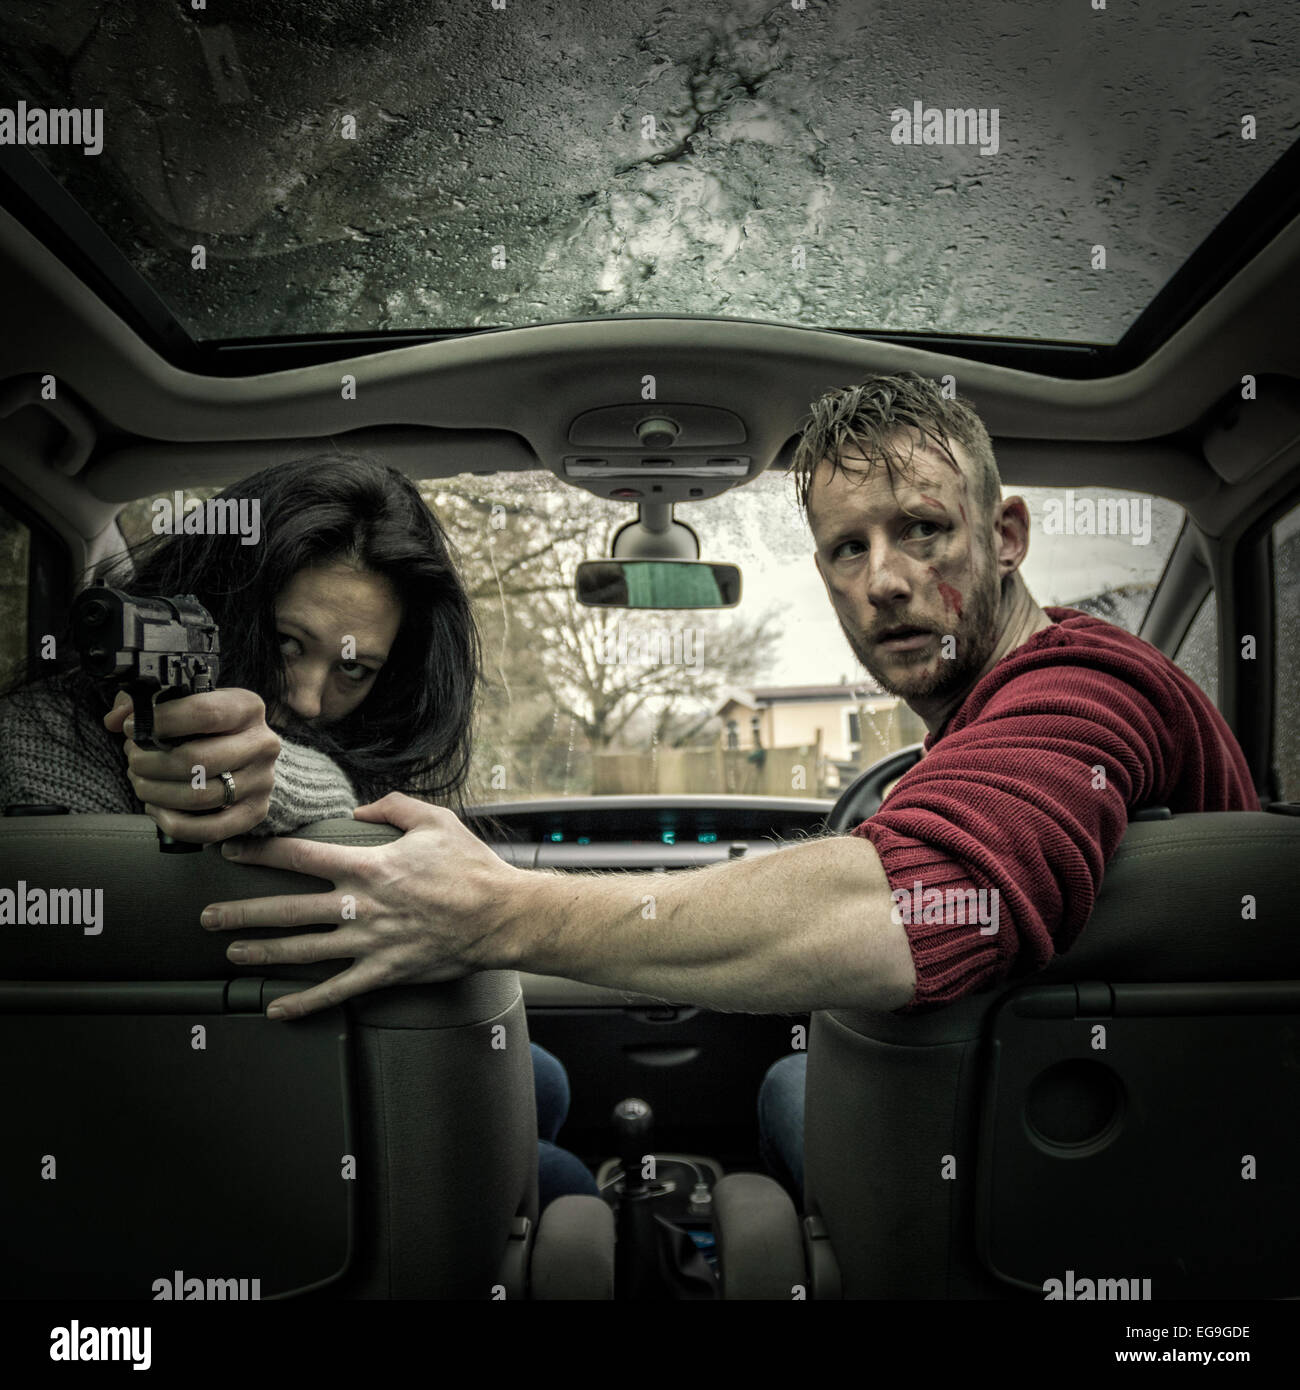 Couple in car with gun Stock Photo